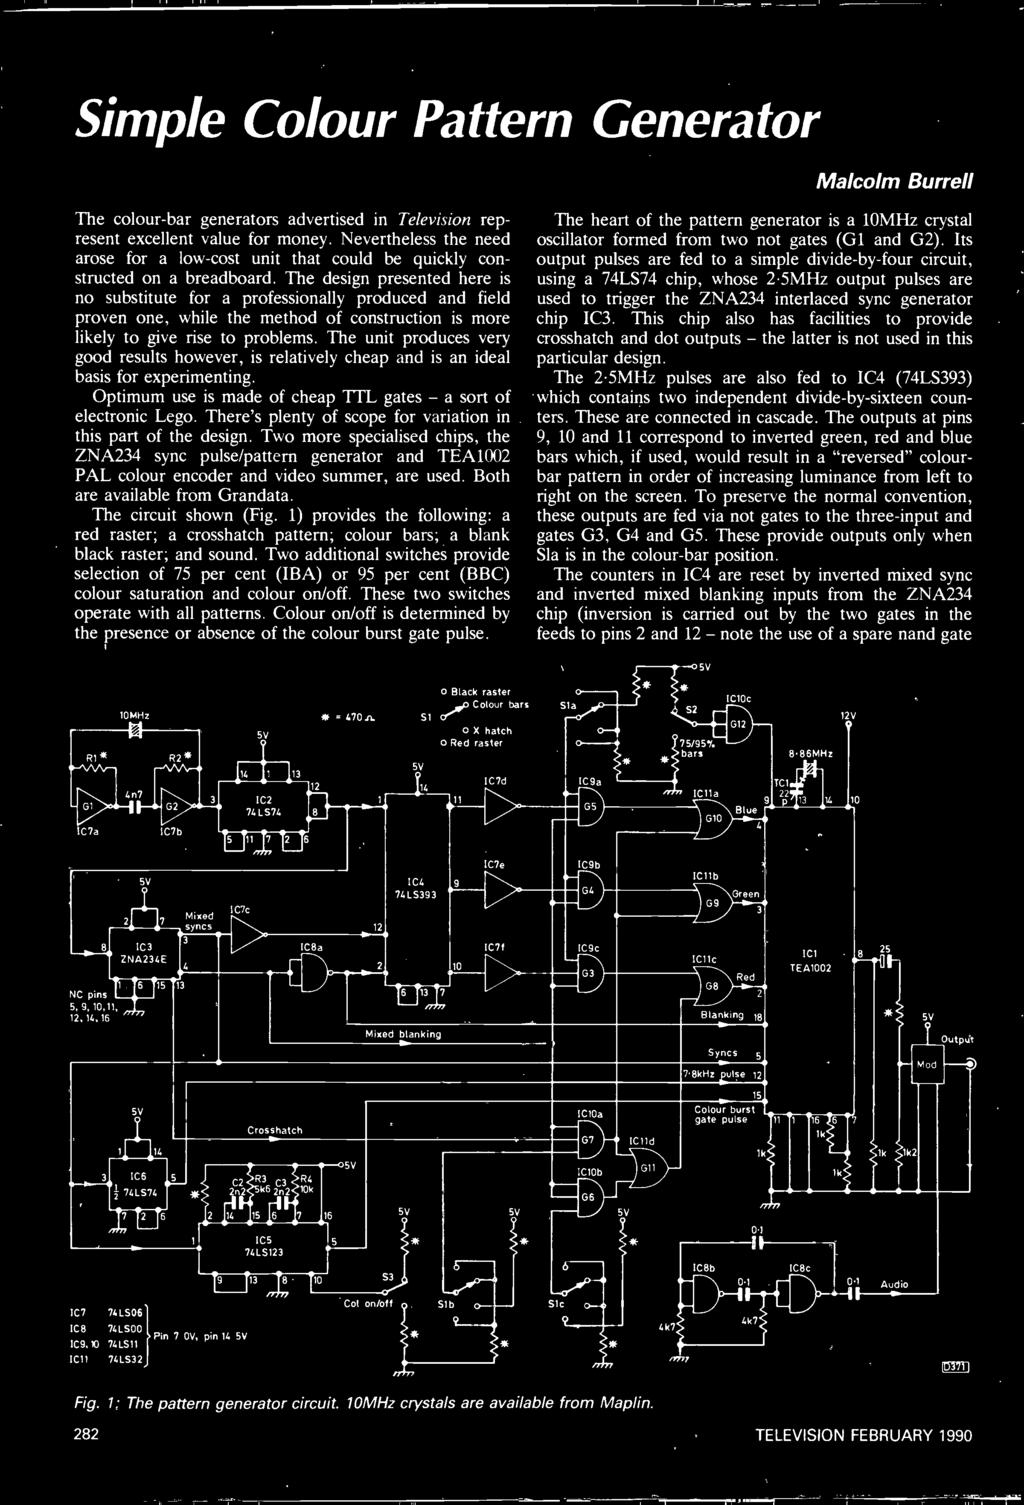 Free Transistor Pack Plus Pdf Oliver 1850 Wiring Diagram Download Schematic Theres Plenty Of Scope For Variation In This Part The Design Two More Specialised